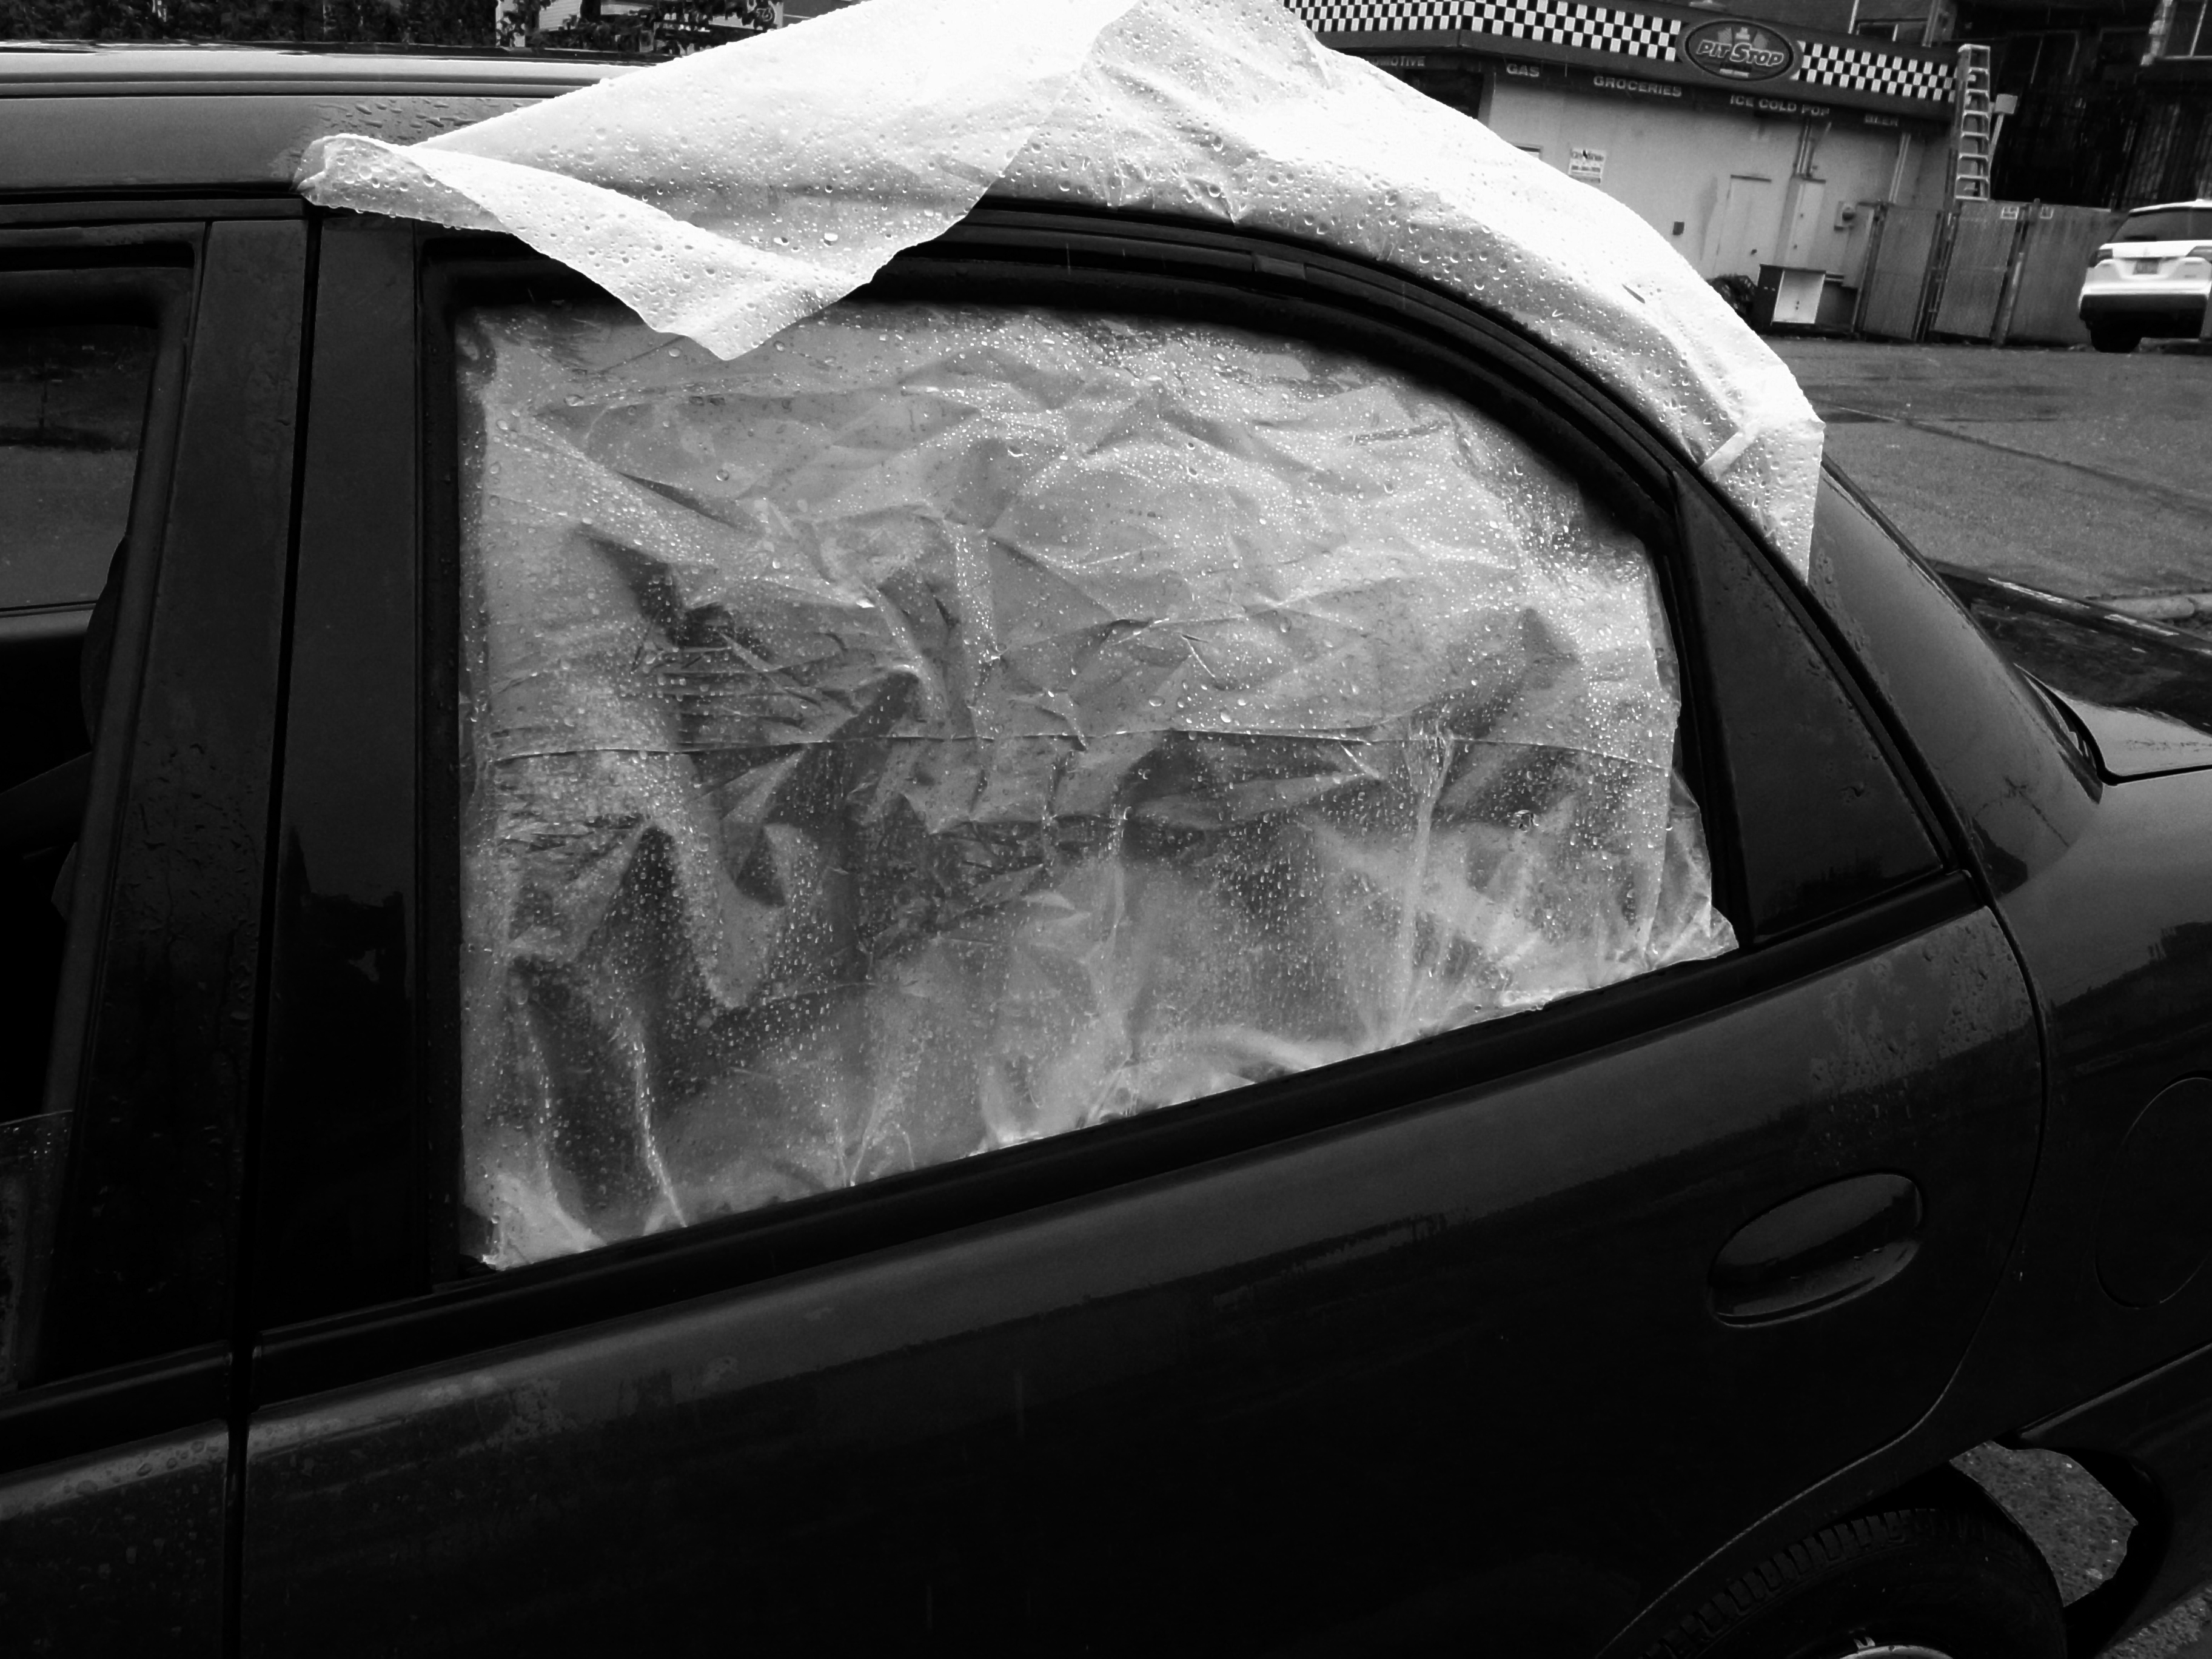 A rain covered translucent plastic covers the boken window of a car